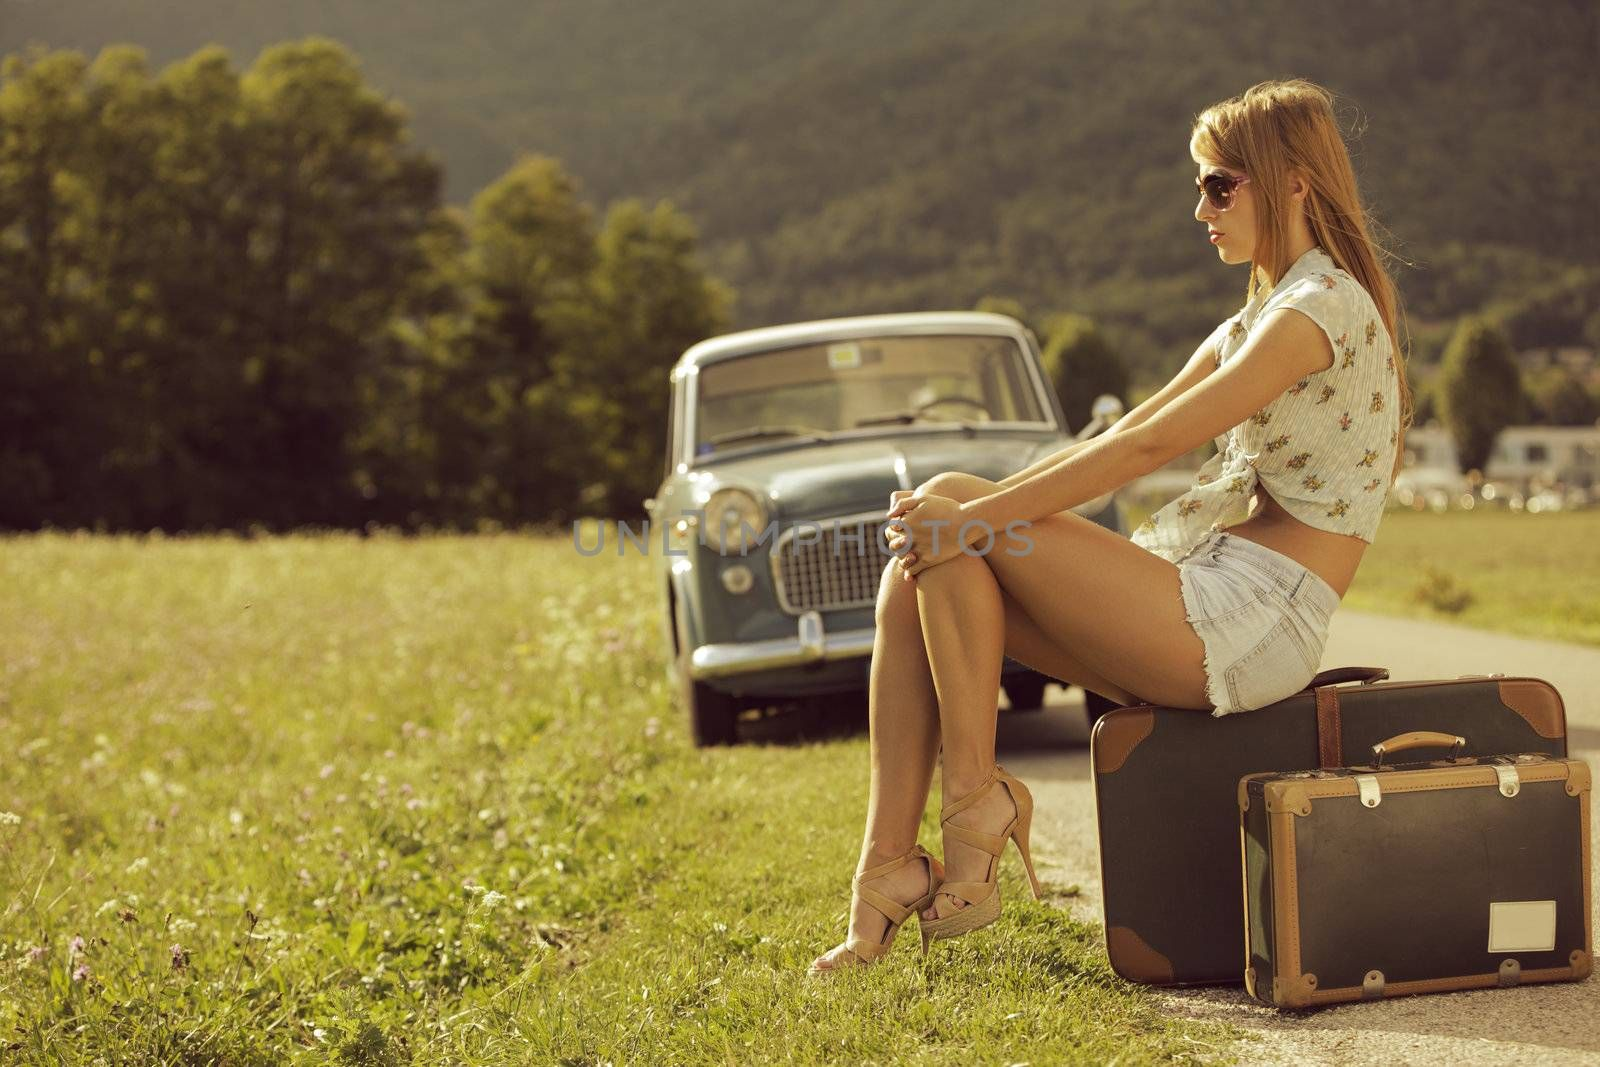 Young sexy woman sitting on suitcases at the roadside, vintage cars in the background